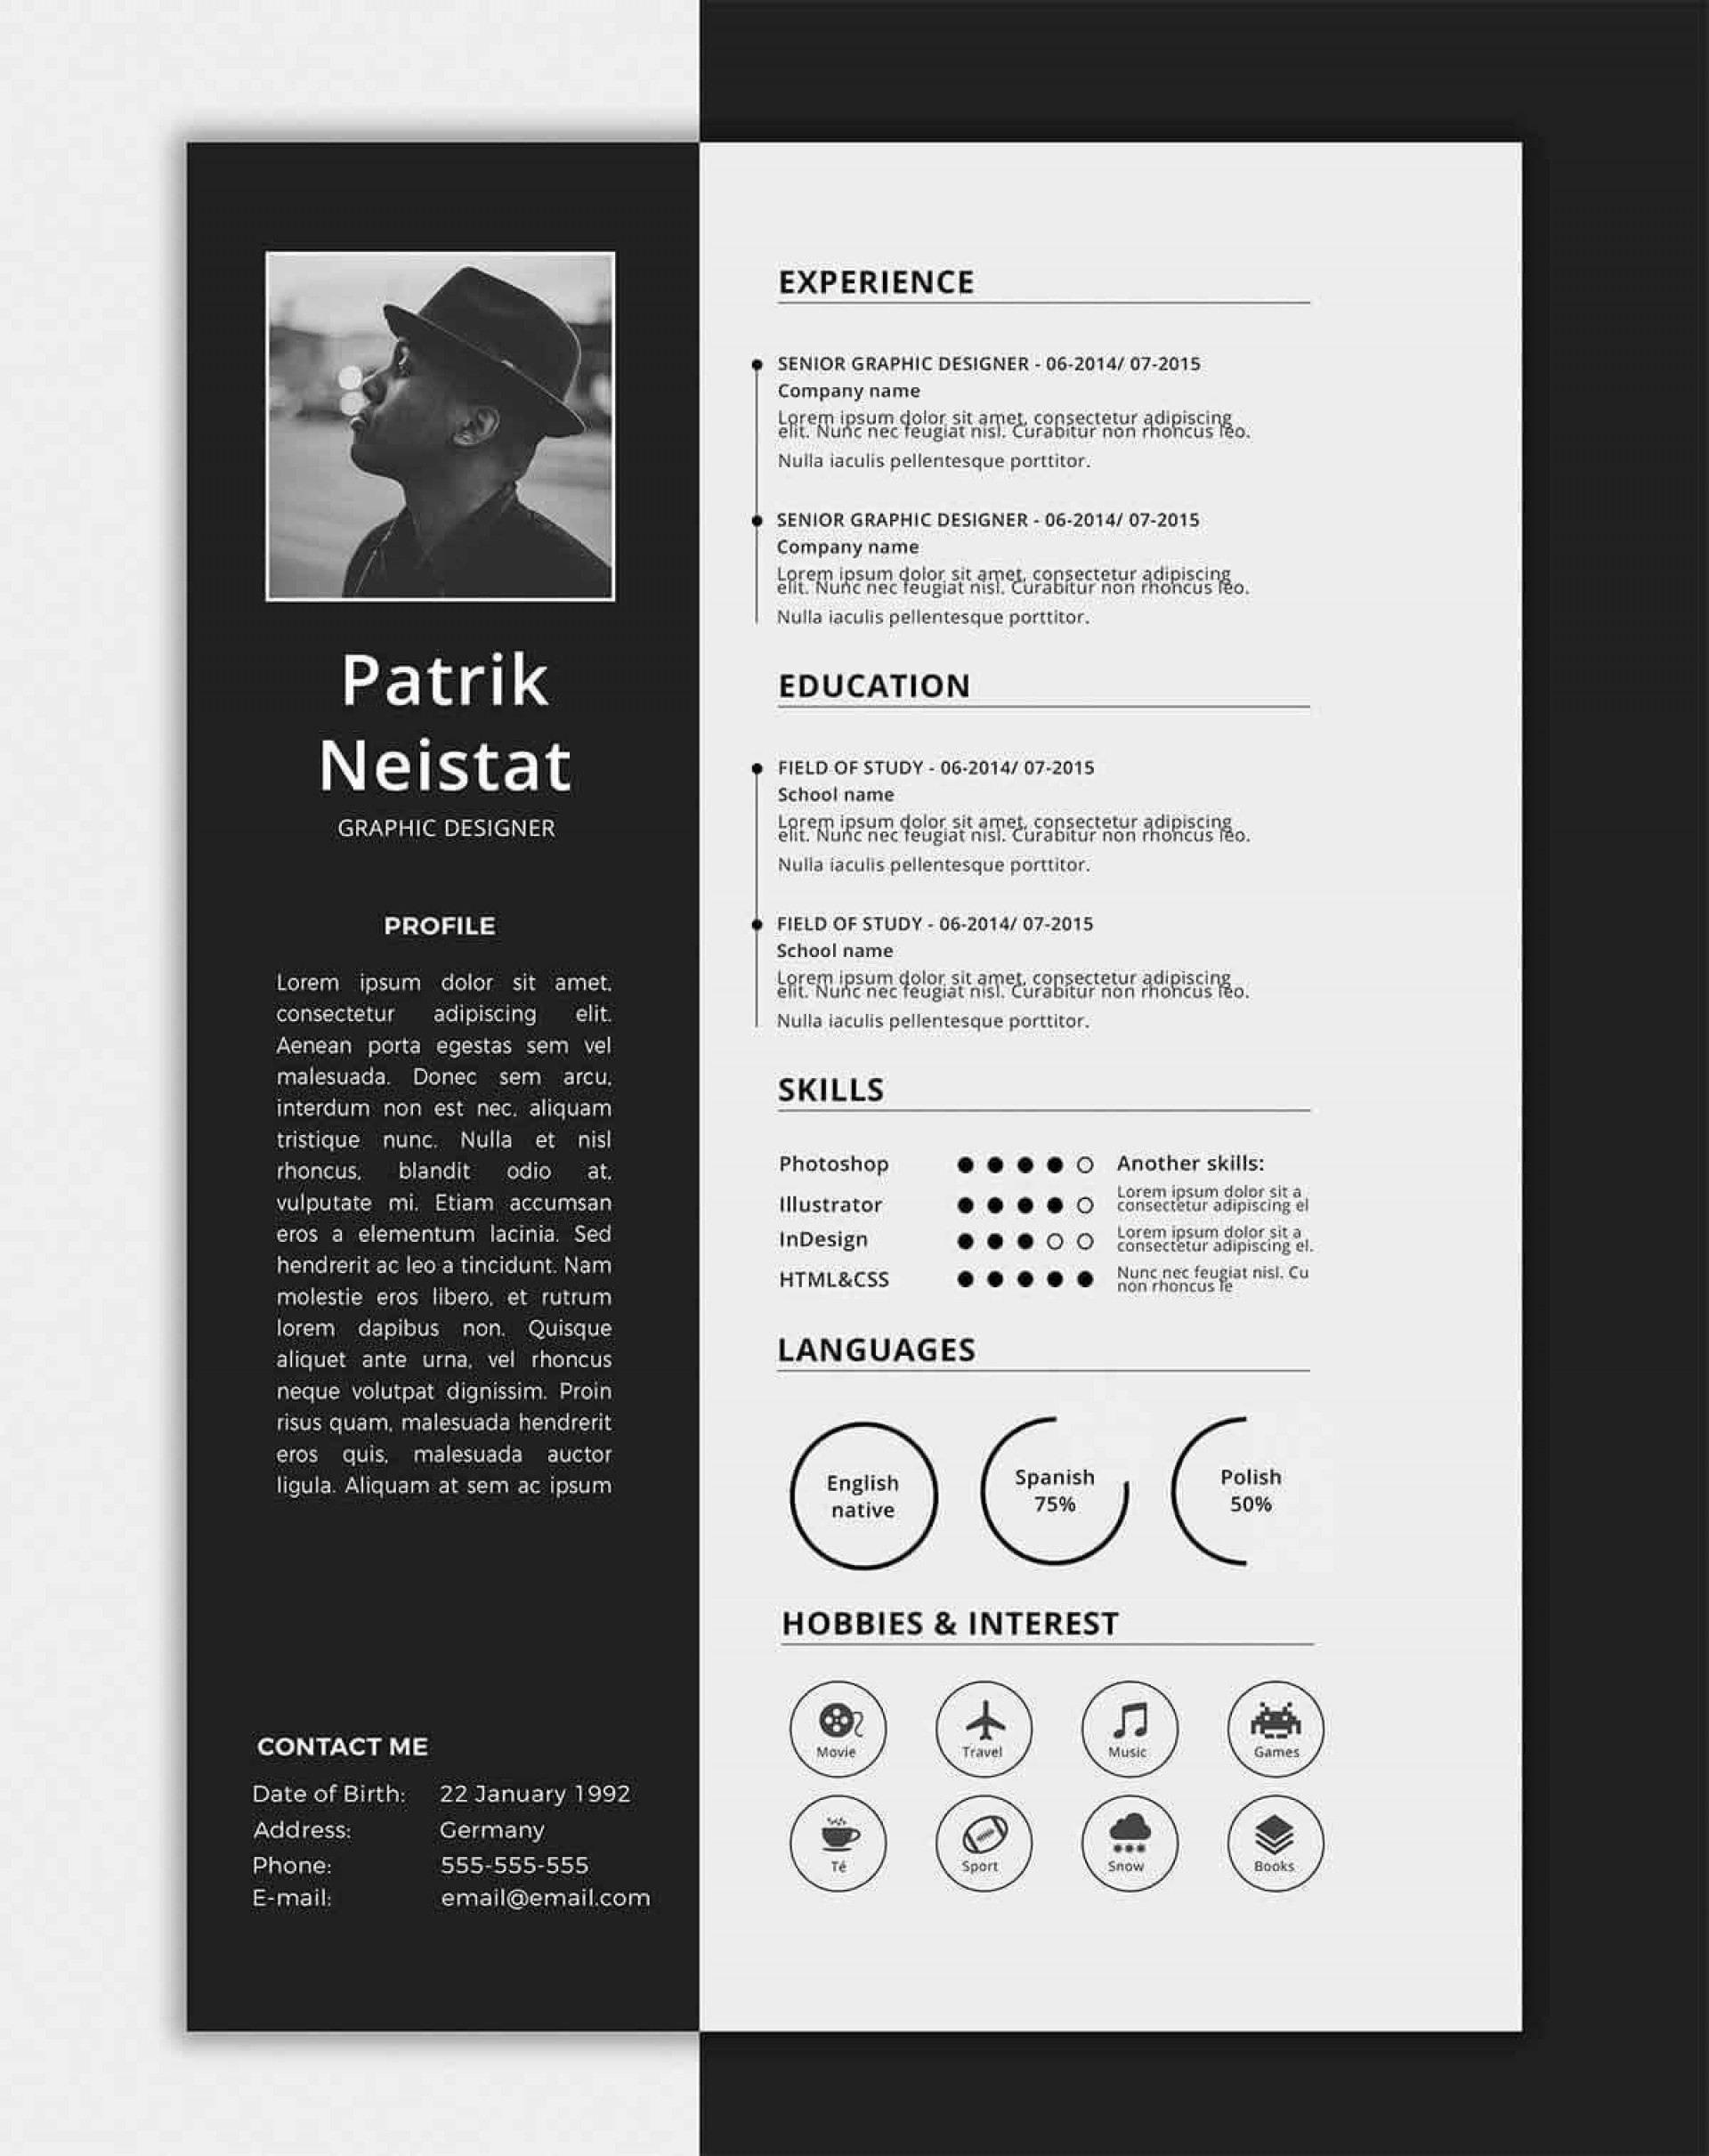 004 Wonderful 1 Page Resume Template Example  Templates One Basic Word Free Html Download1920